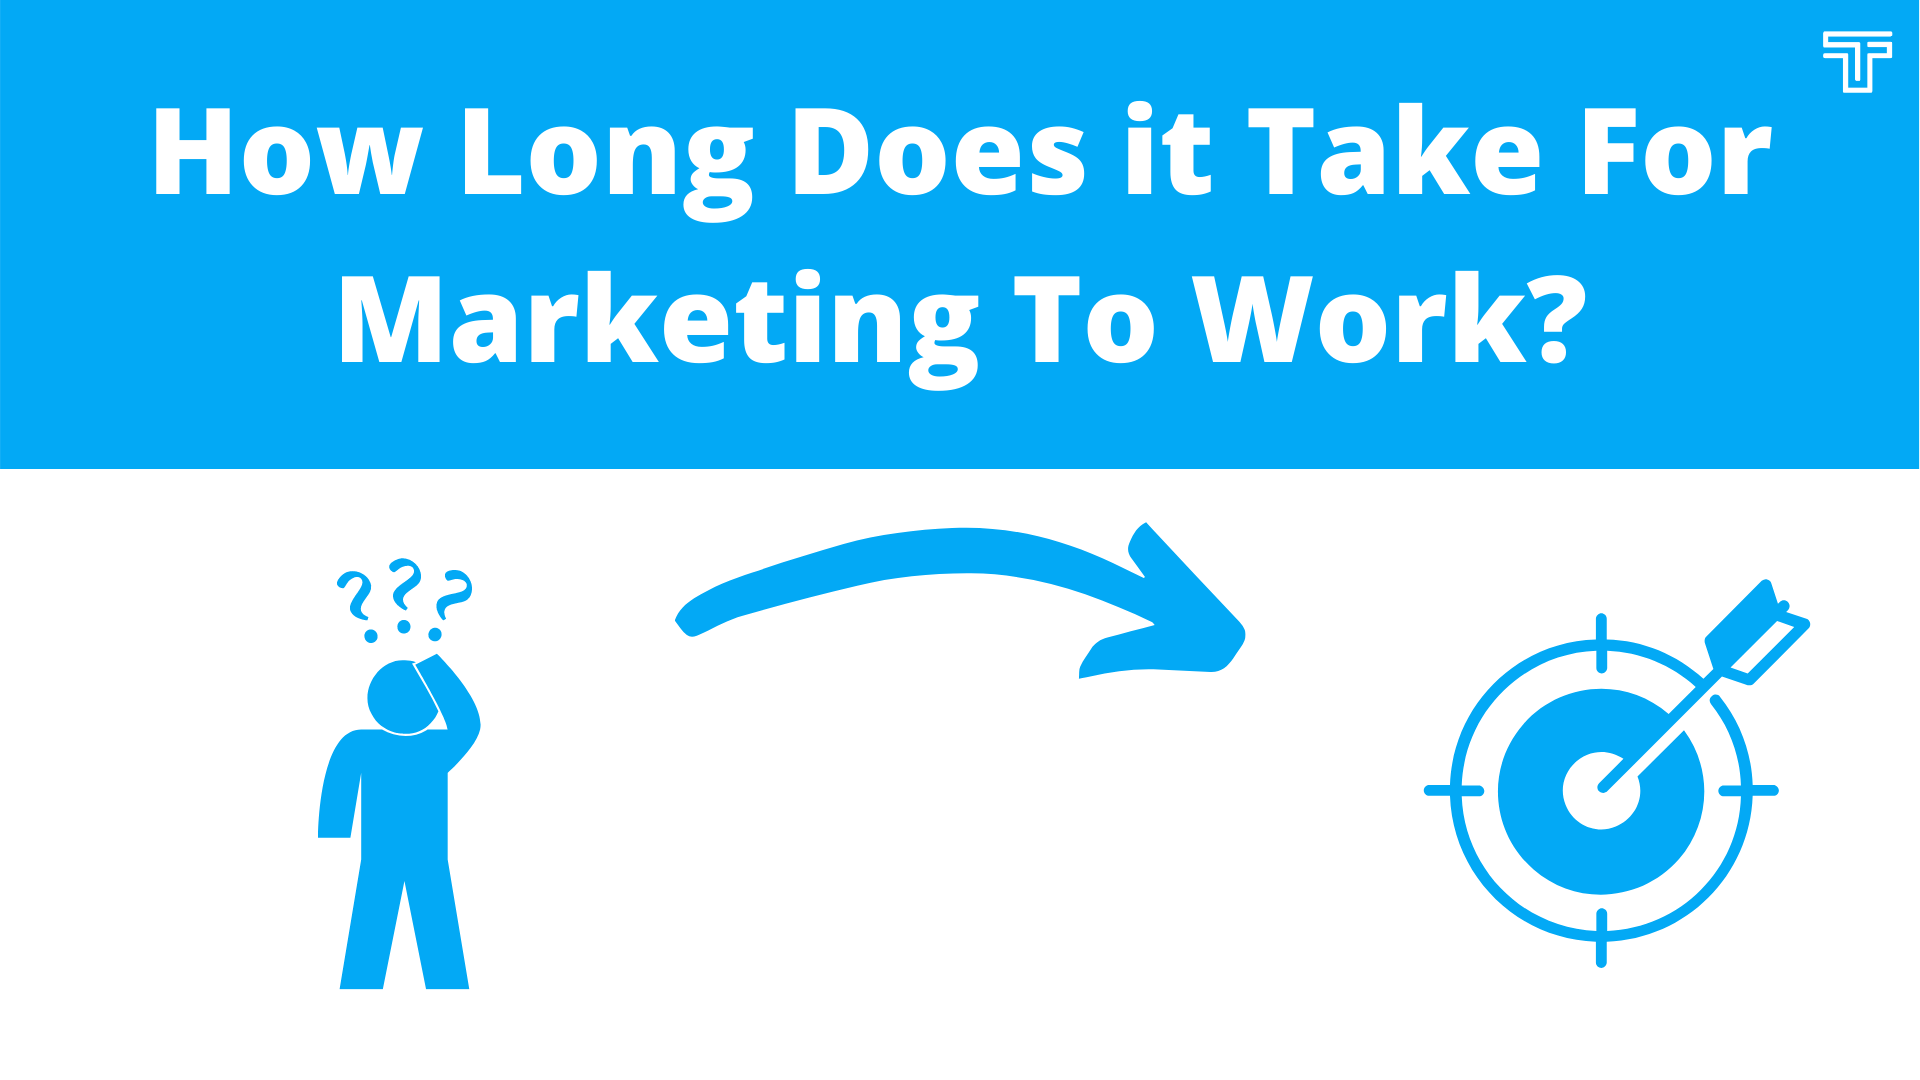 How Long Does It Take For Marketing To Work